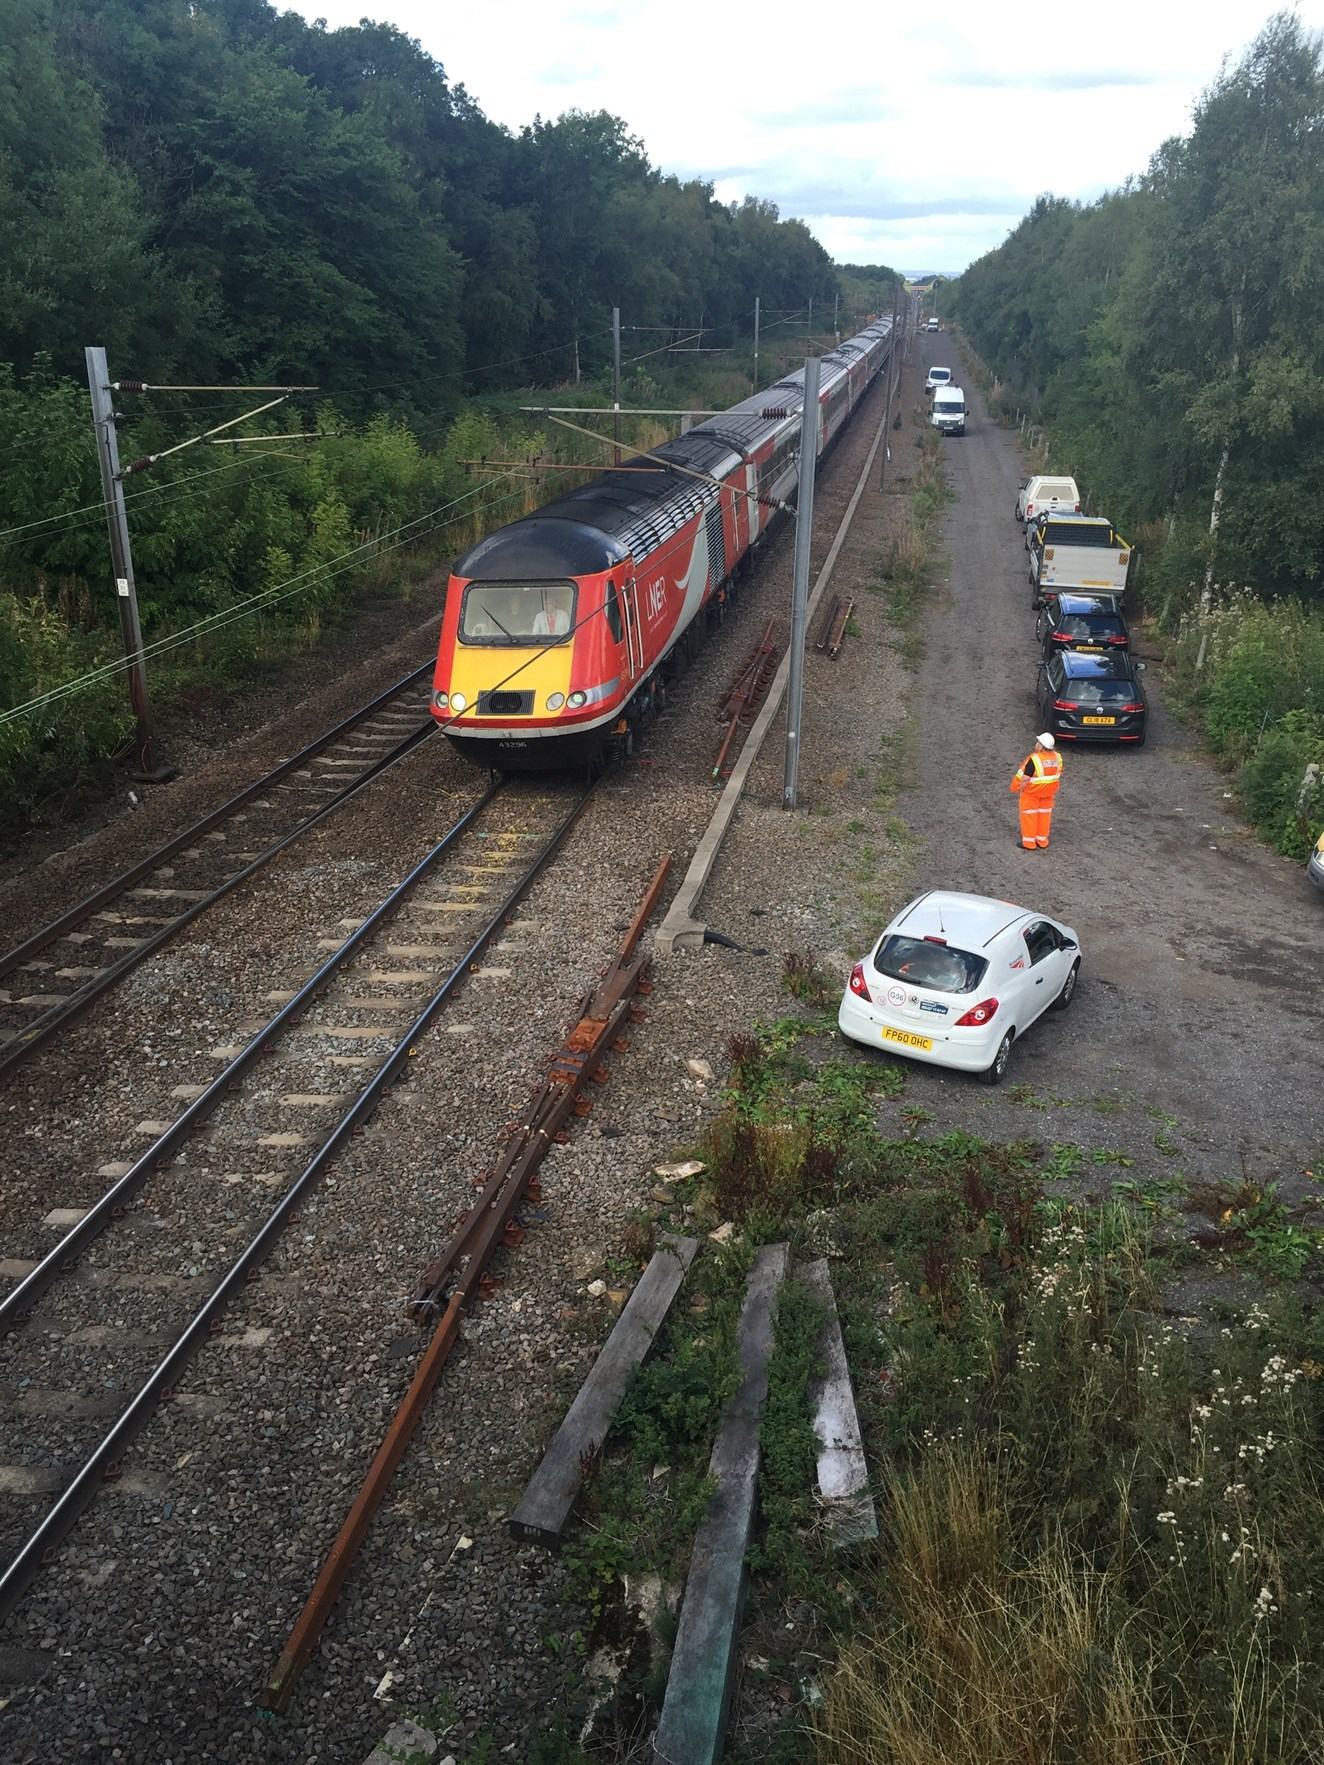 Update - services now resumed on track hit by tractor in Fitzwilliam, Wakefield: Train on track at Fitzwilliam